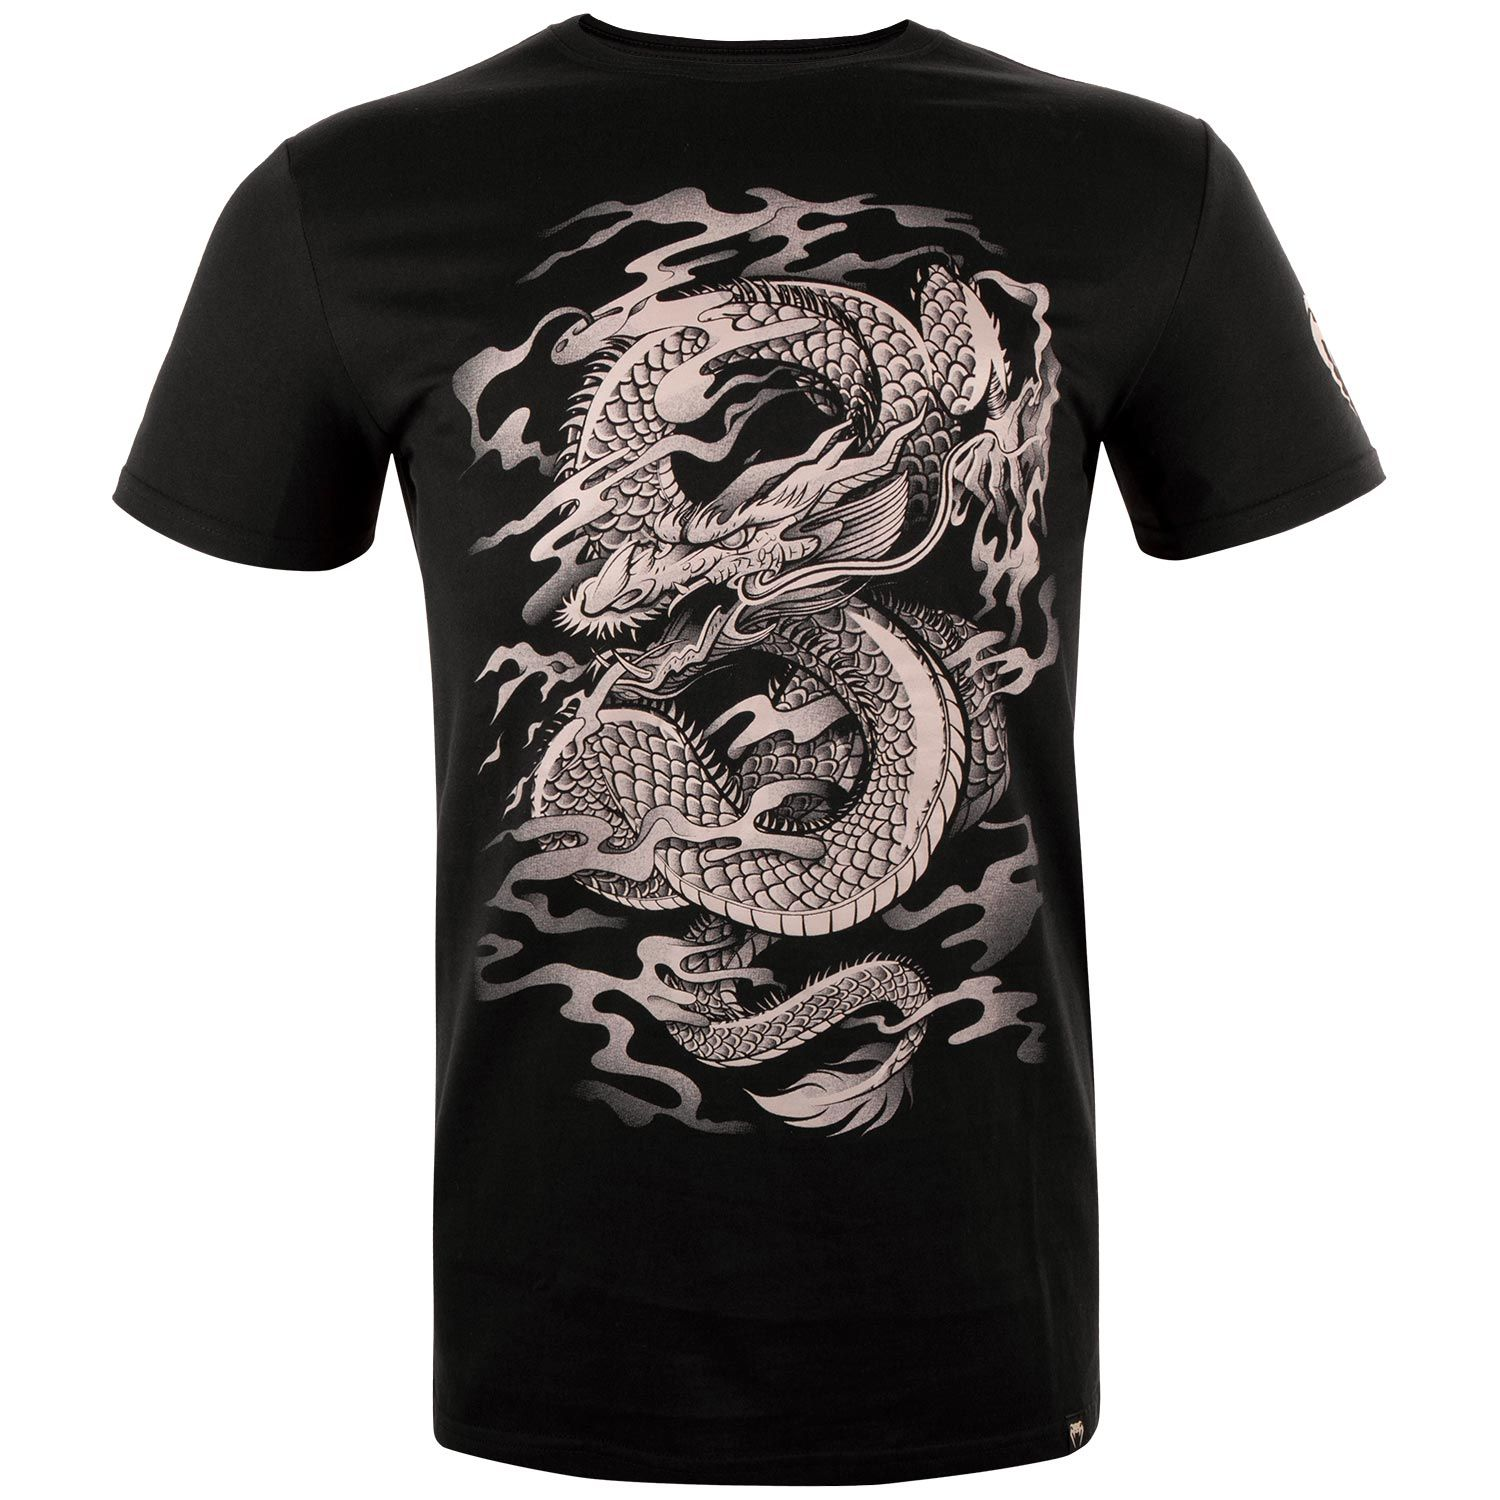 T-shirt Venum Dragon's Flight - Nero/Sabbia